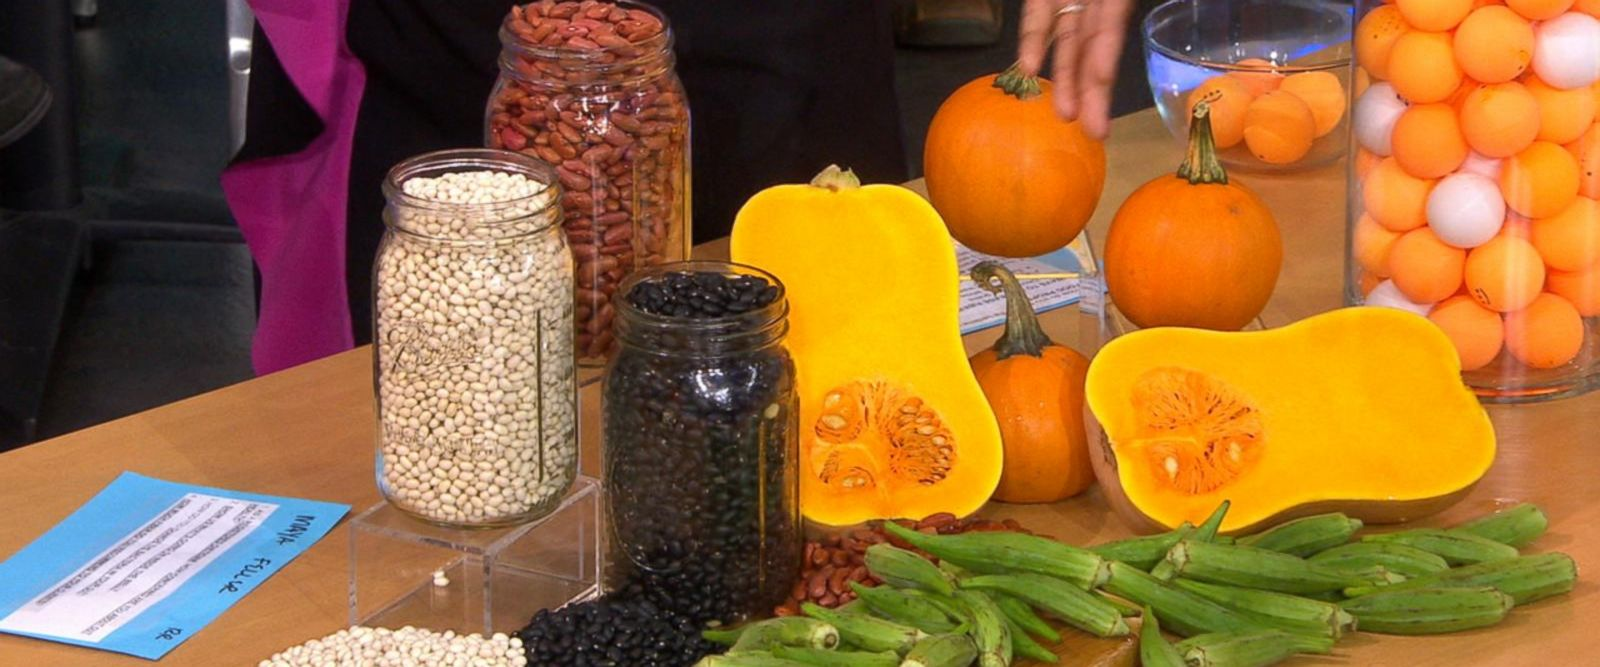 VIDEO: What to know about the new 'clever gut diet'